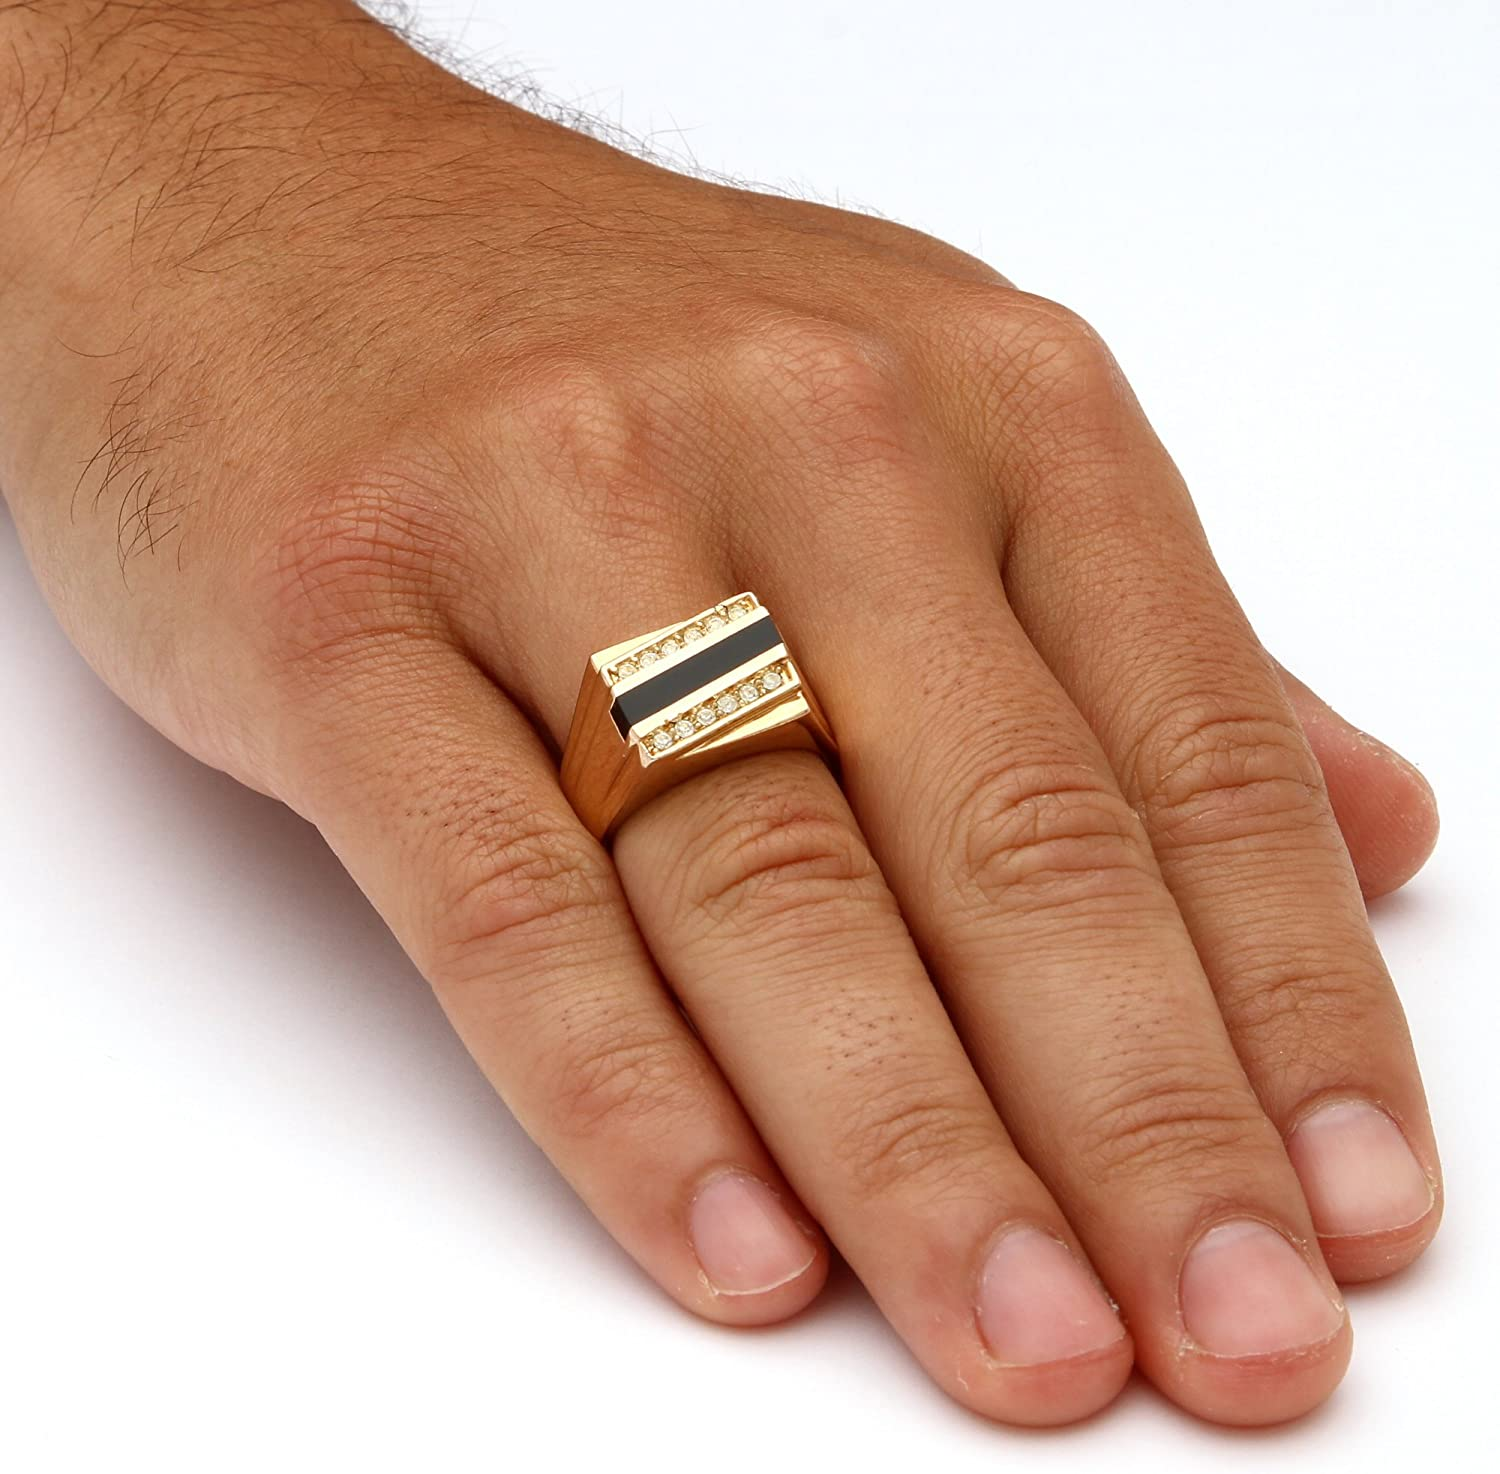 Palm Beach Jewelry Men's Gold-Plated Emerald Cut Natural Black Onyx and Round Crystal Ring